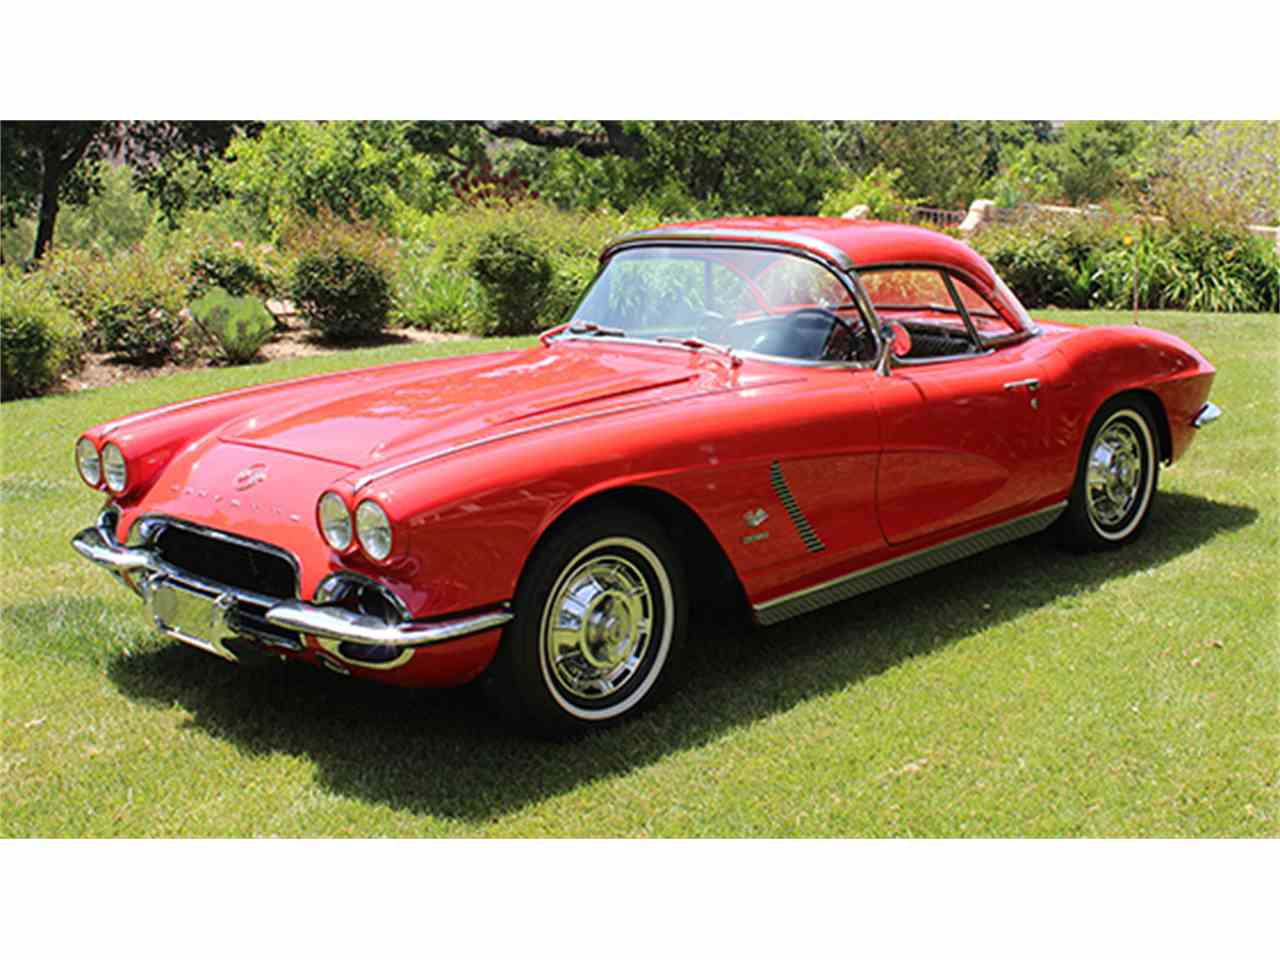 1962 Chevrolet Corvette Lola for Sale | ClassicCars.com | CC-984365